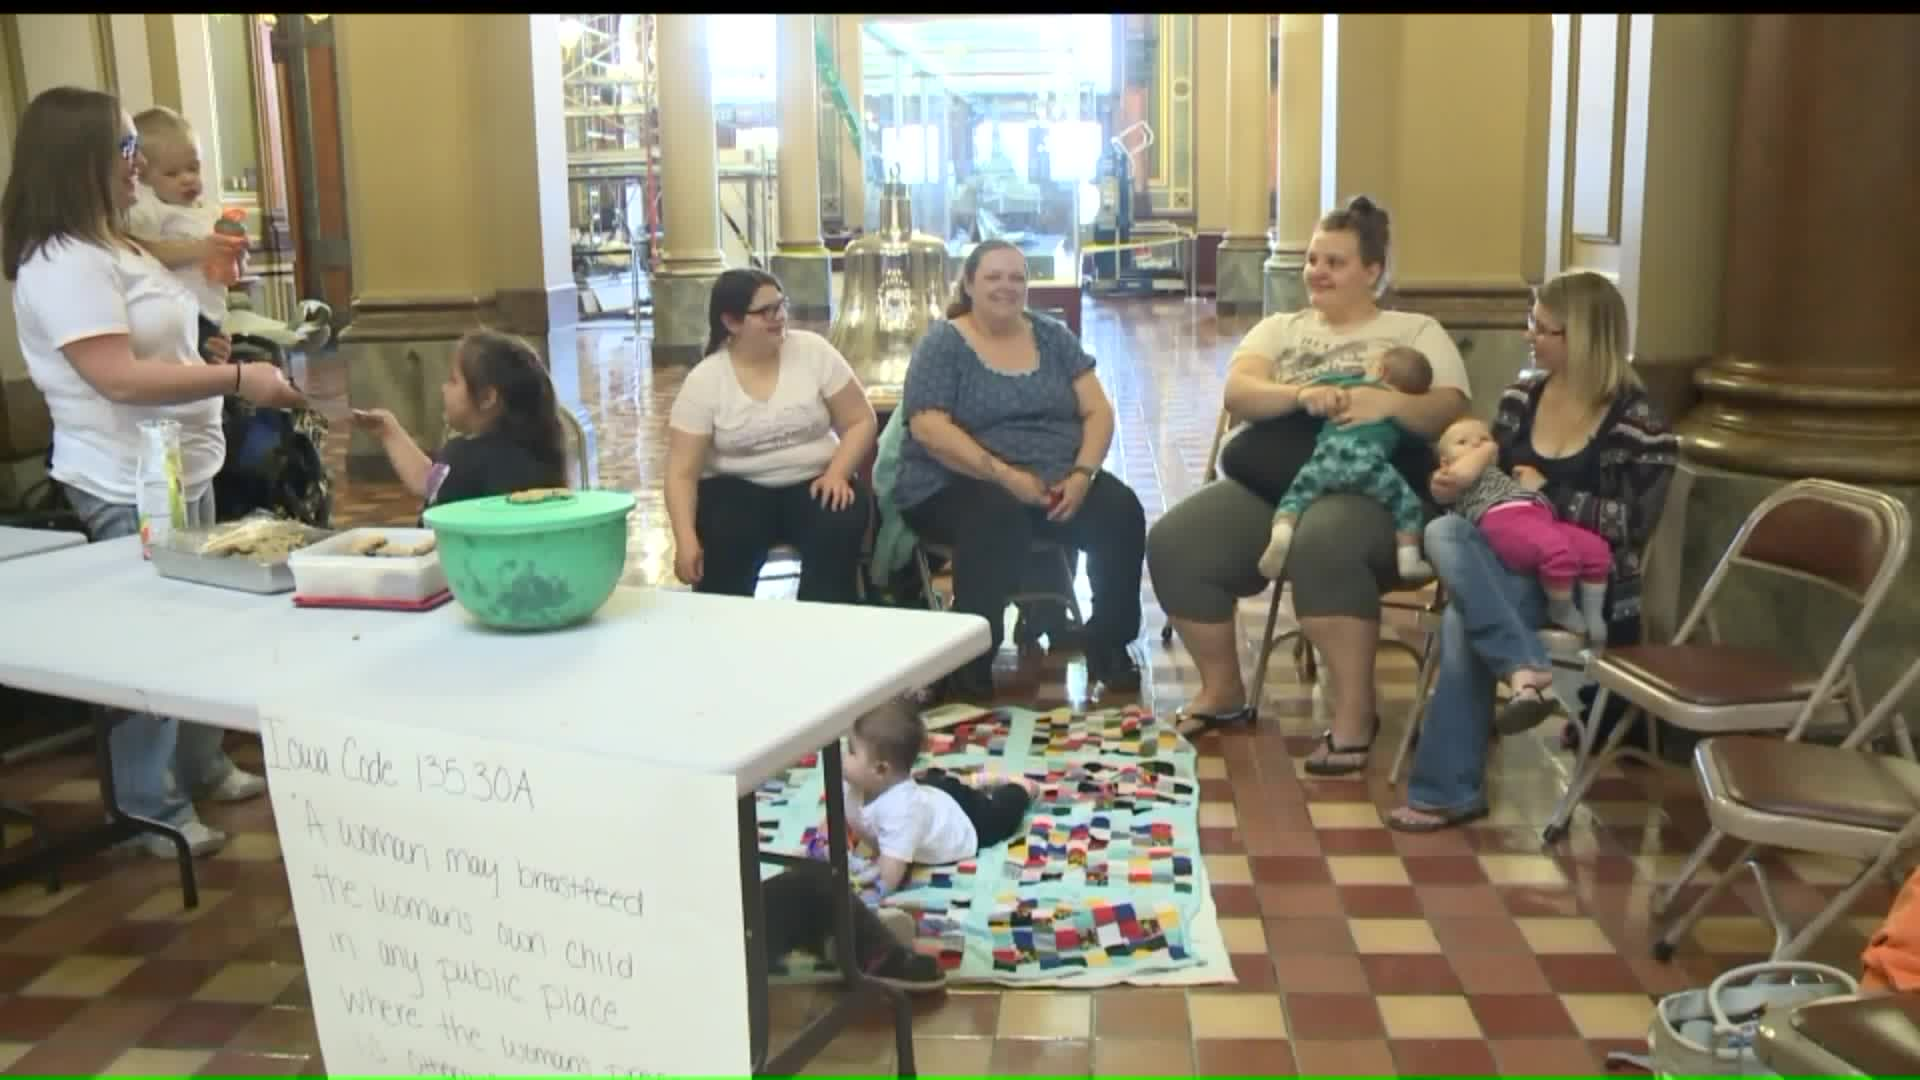 Public Breastfeeding Awareness Rally Held At Iowa State Capitol